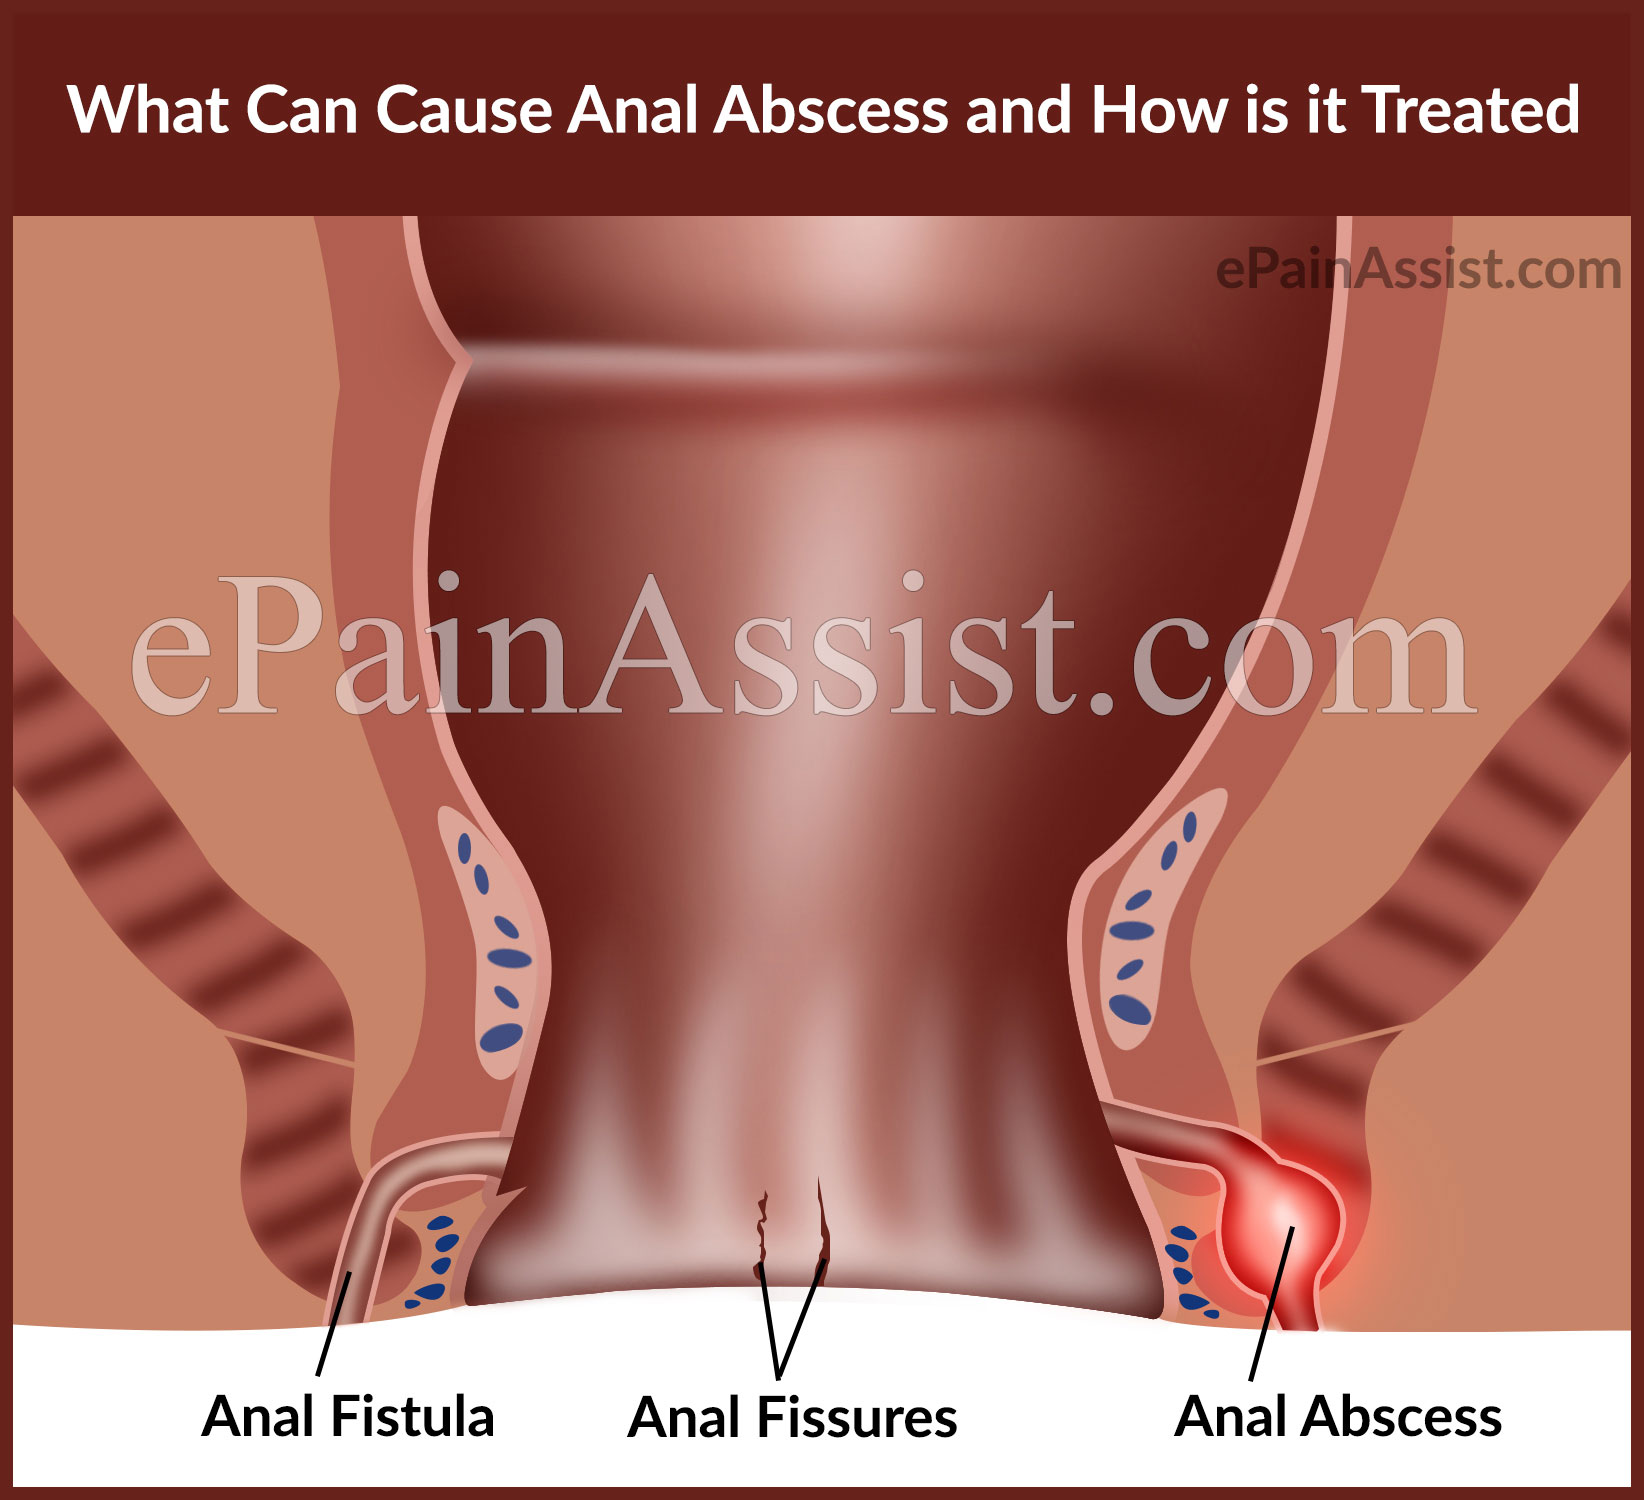 What is Anal Abscess?